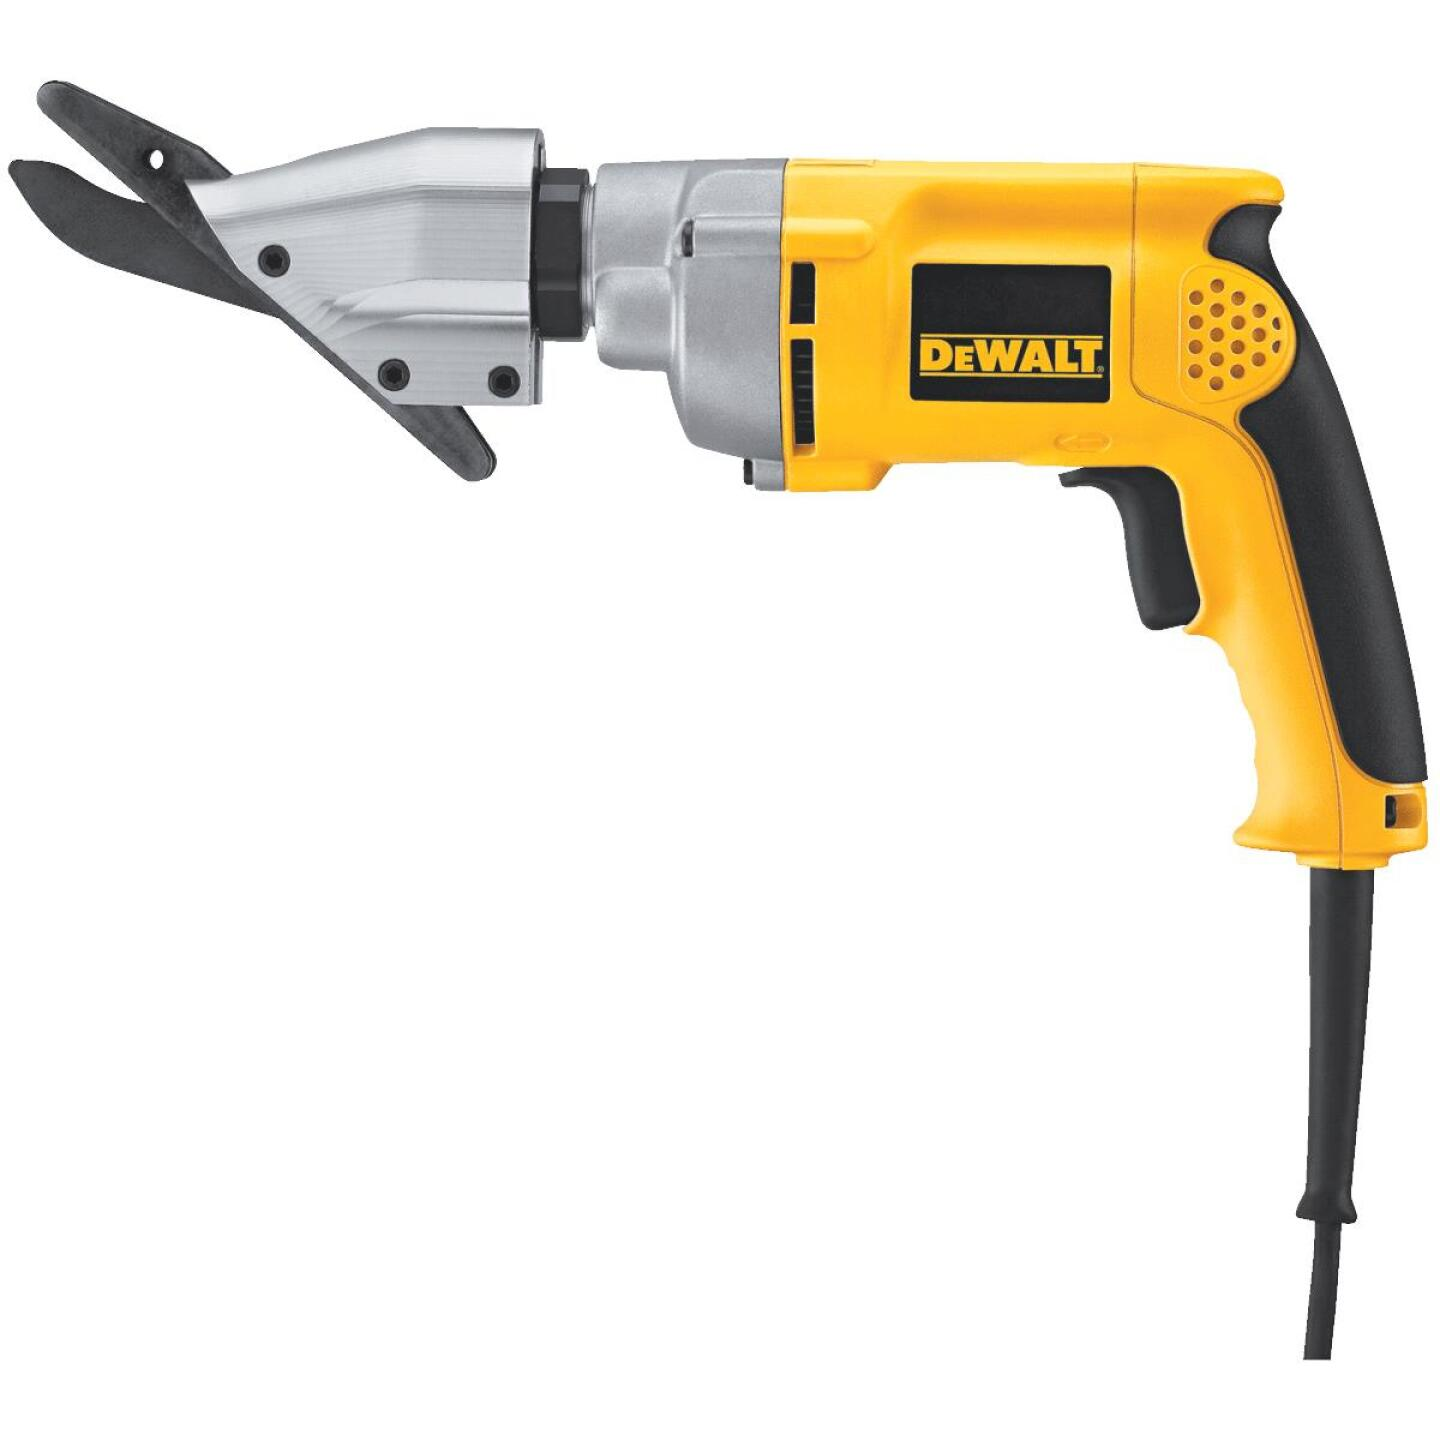 DeWalt 1/2 In. 6.5A Cement Shear Image 1